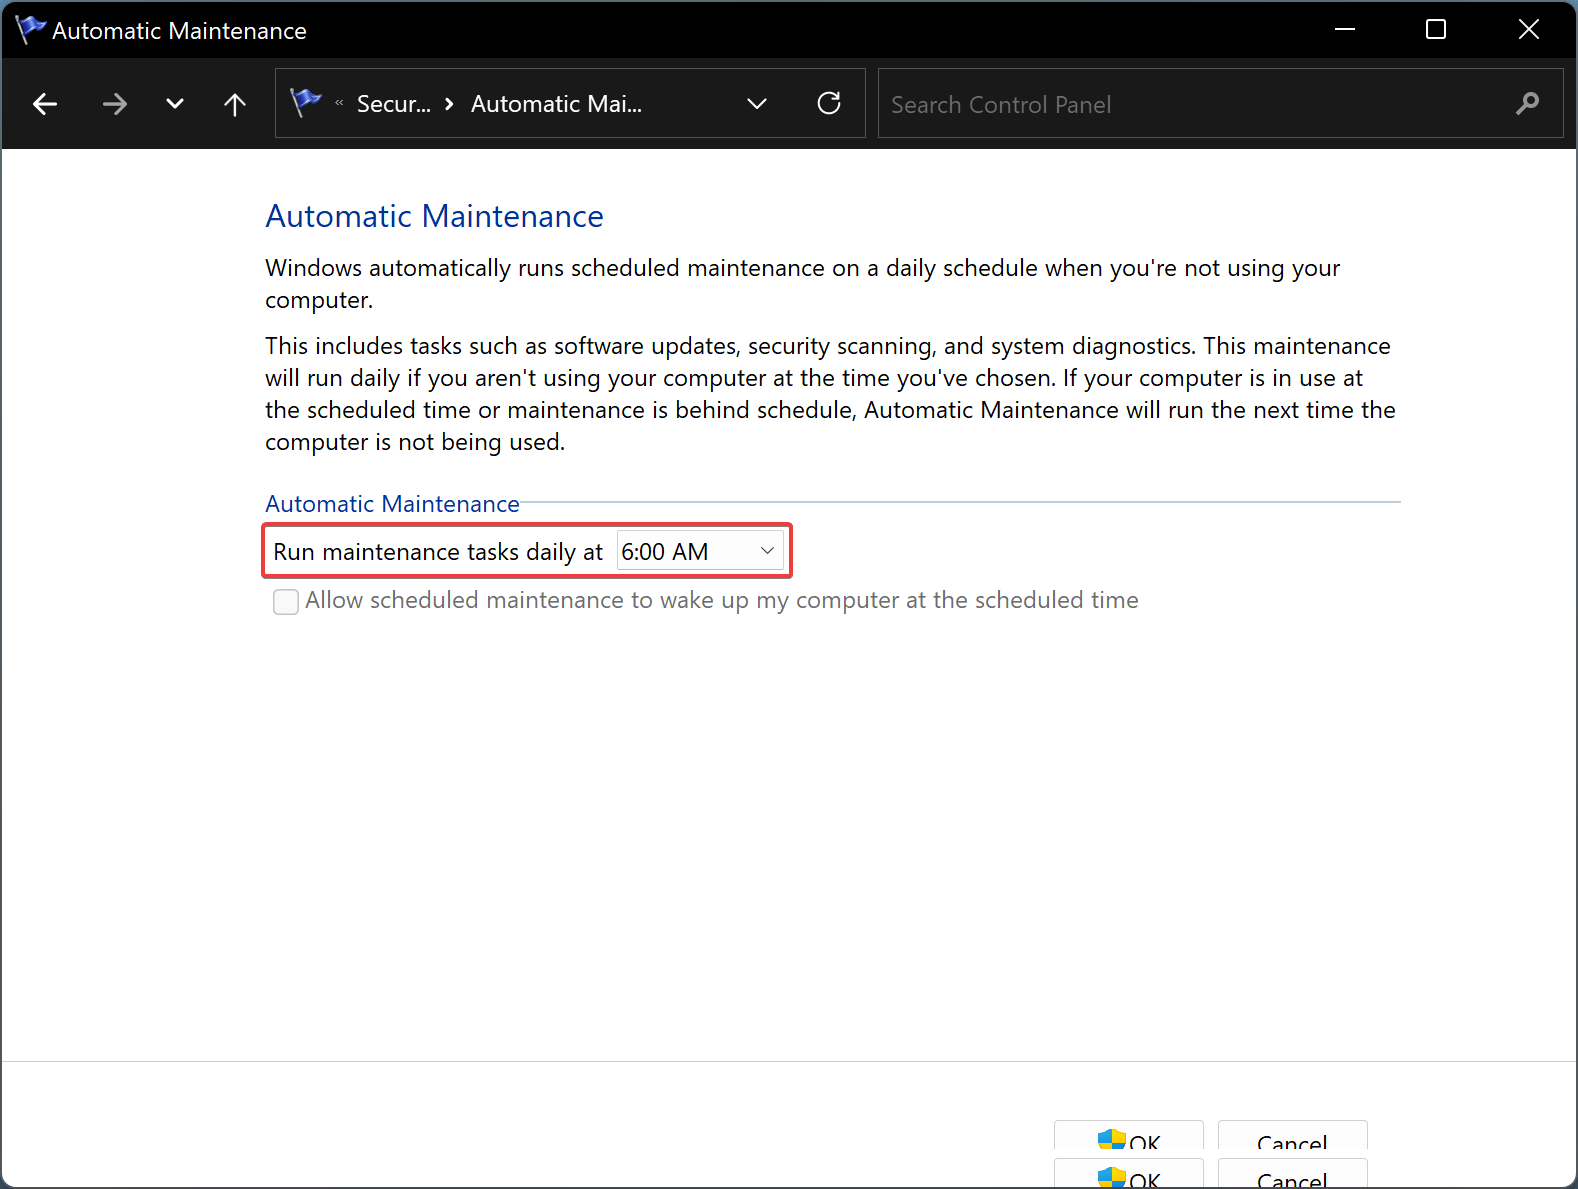 How to Schedule Automatic Maintenance on Windows 11?